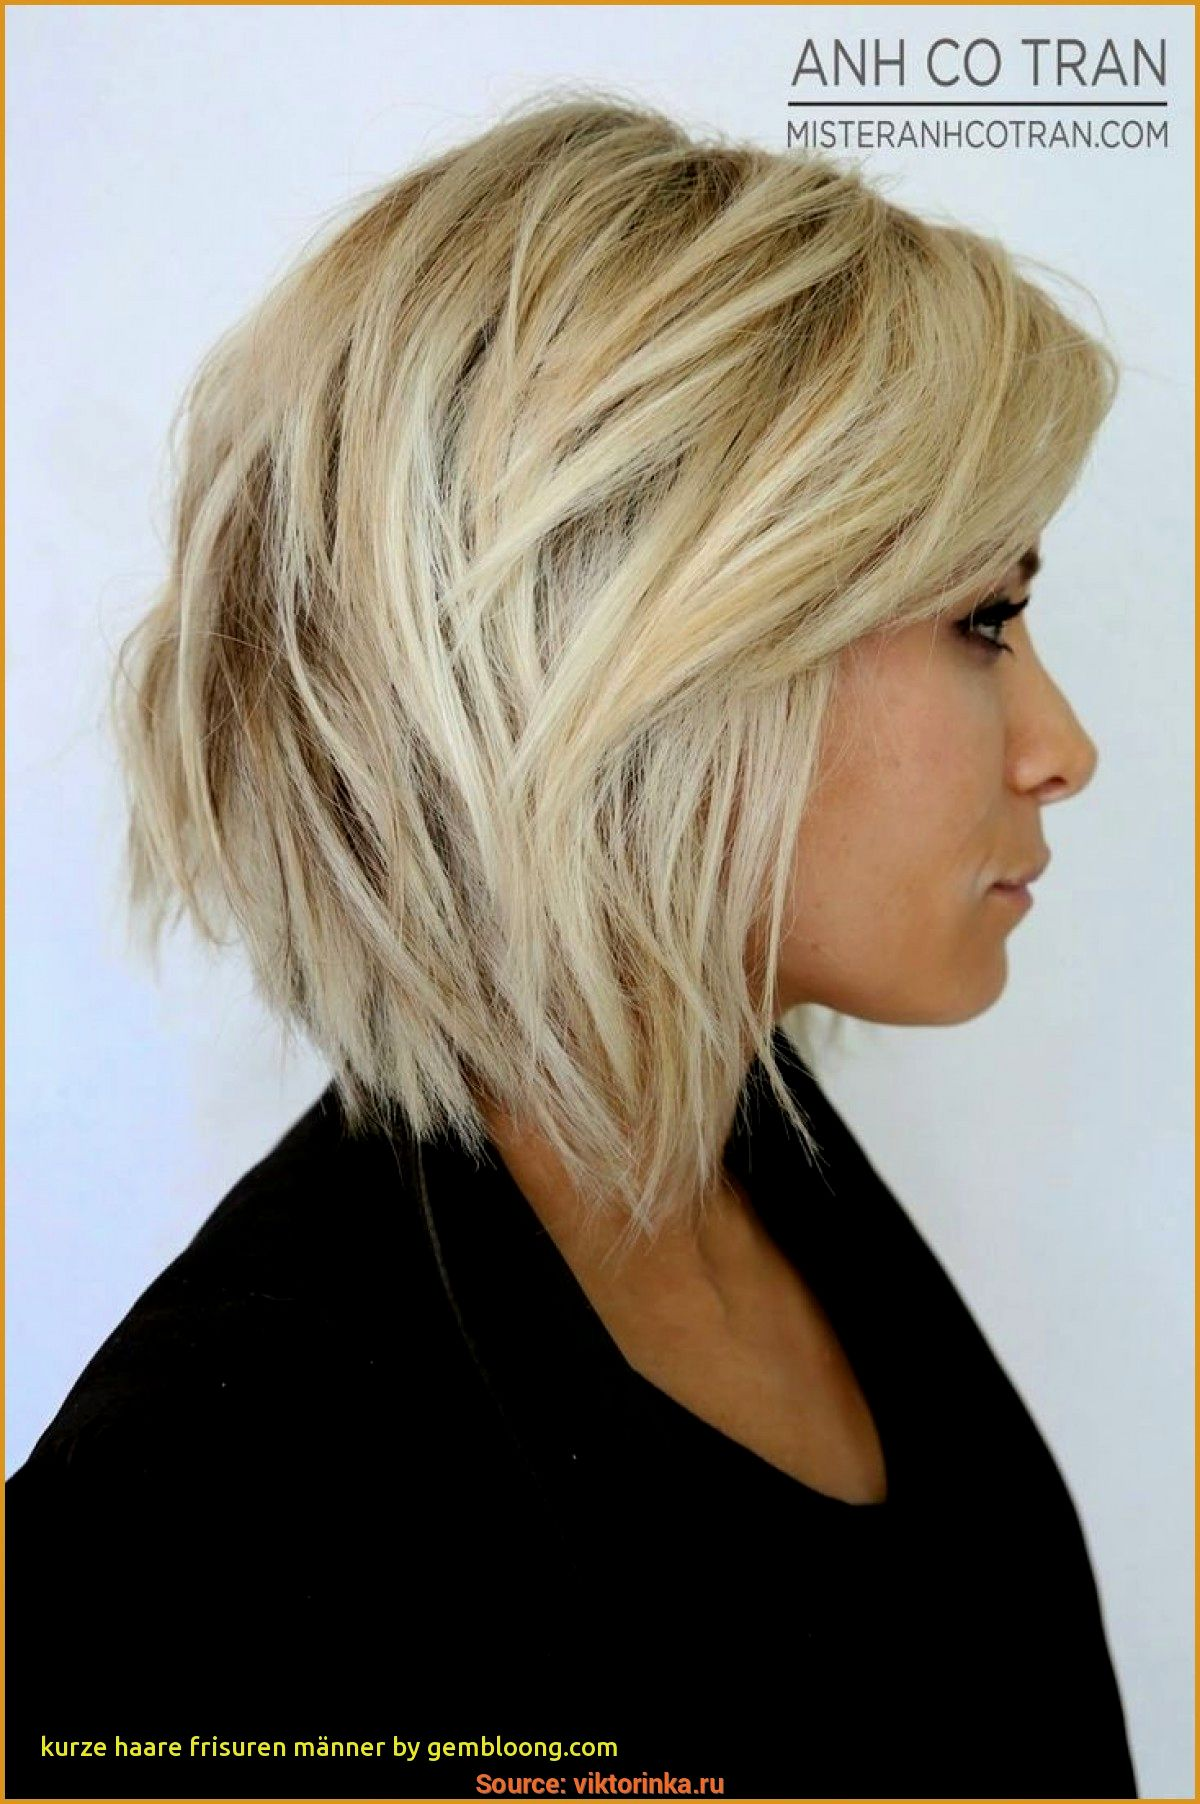 Luxury Hairstyles Short Men's Collection Amazing Hairstyles Short Men's Model